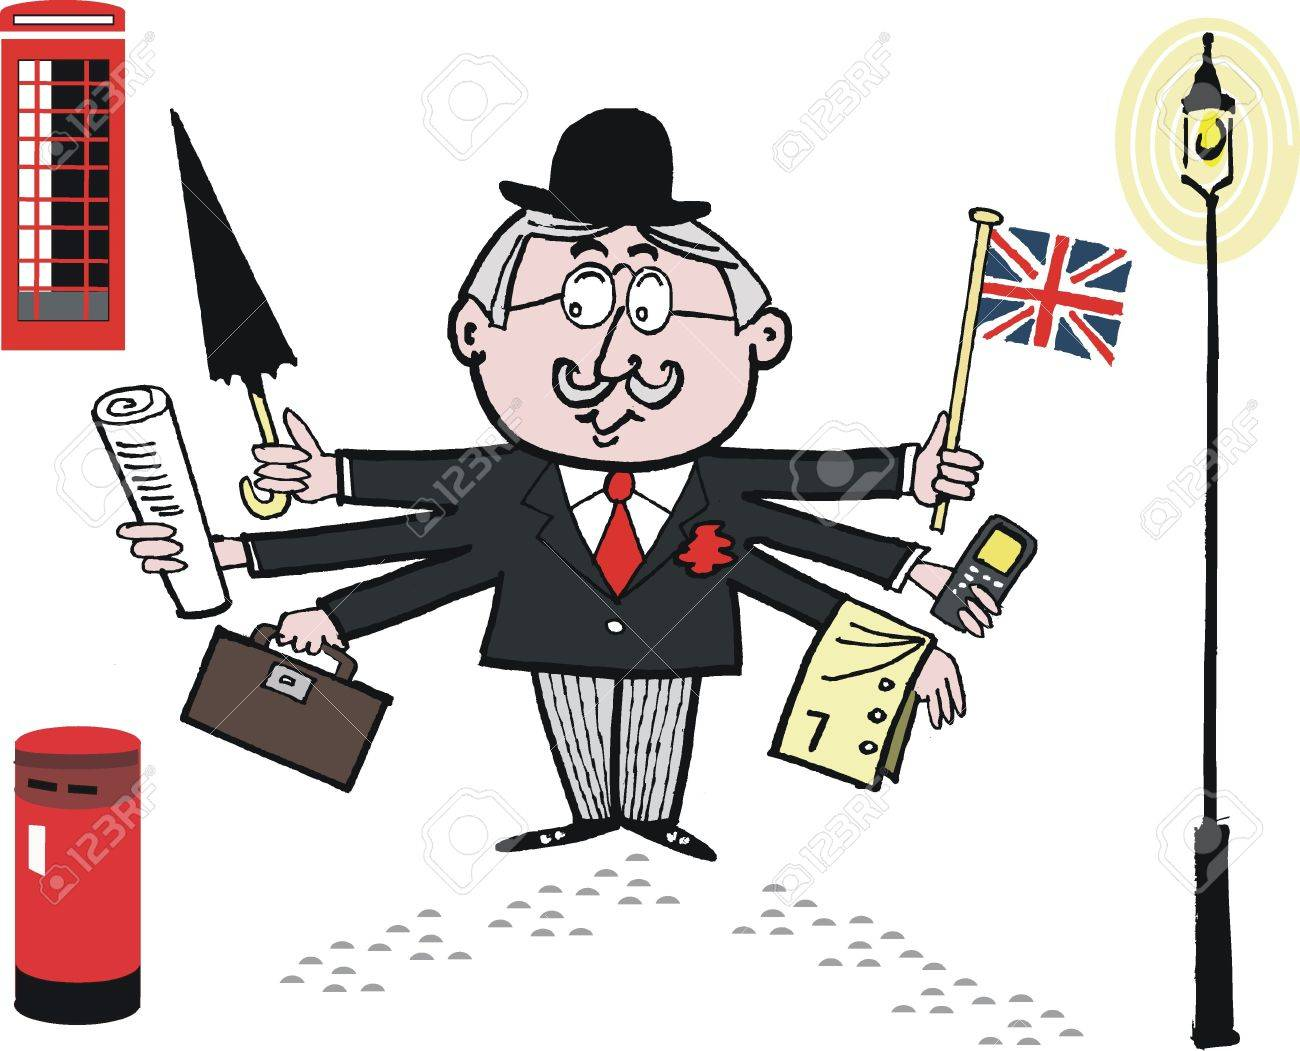 Cartoon Of English Man In Bowler Hat With Flag Royalty Free Cliparts